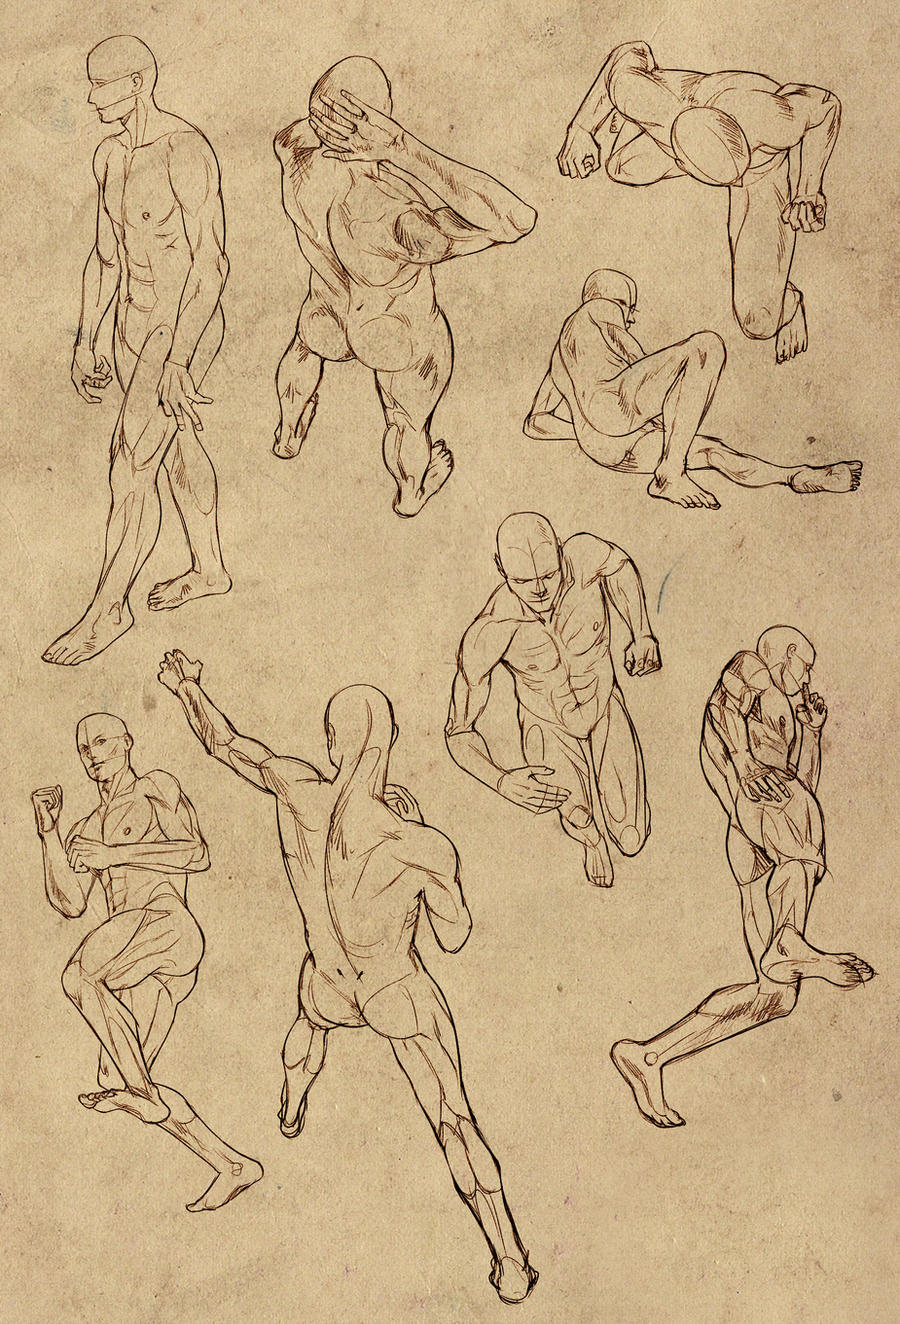 Hard perspective anatomy references for males by ElephantWendigo